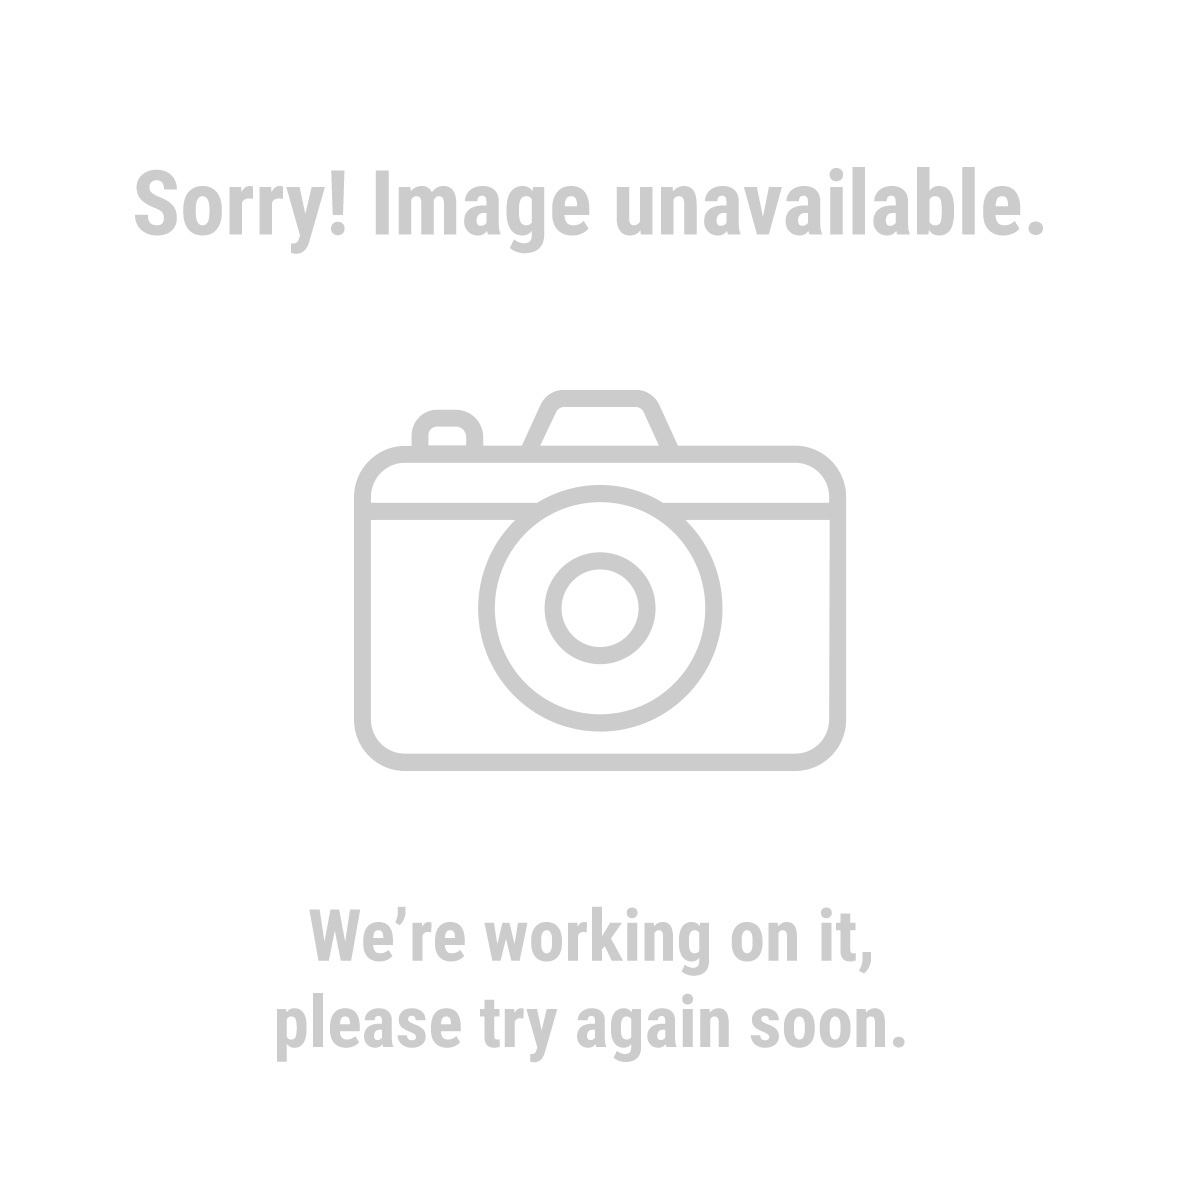 "Pittsburgh 68101 3 Piece 1/4"", 3/8"" and 1/2"" Socket Rail Set"